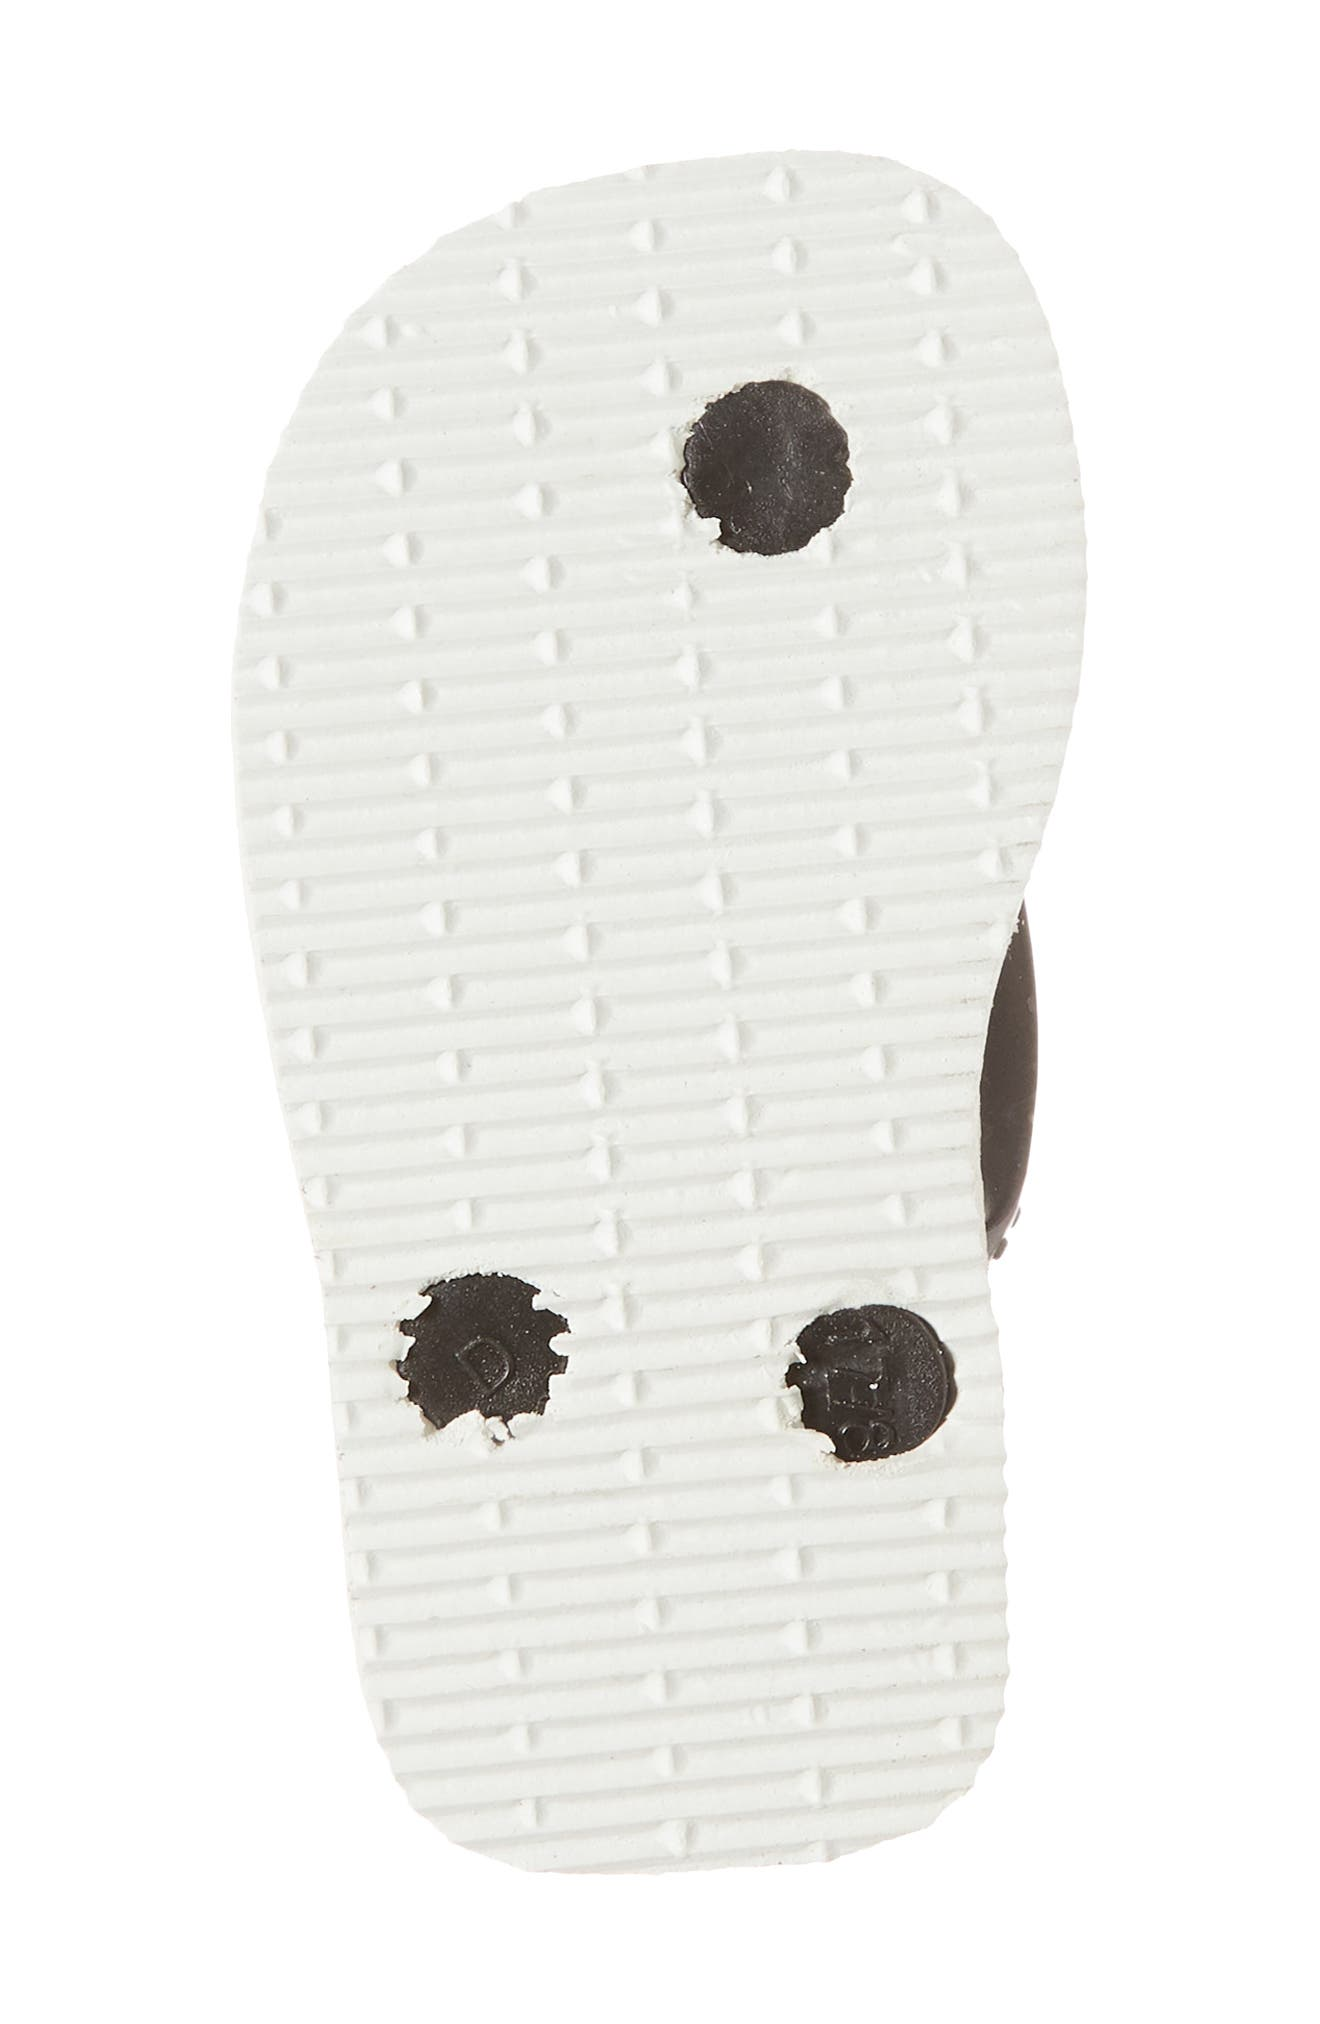 Havianas Baby Chic Sandal,                             Alternate thumbnail 6, color,                             White/ Black/ Black